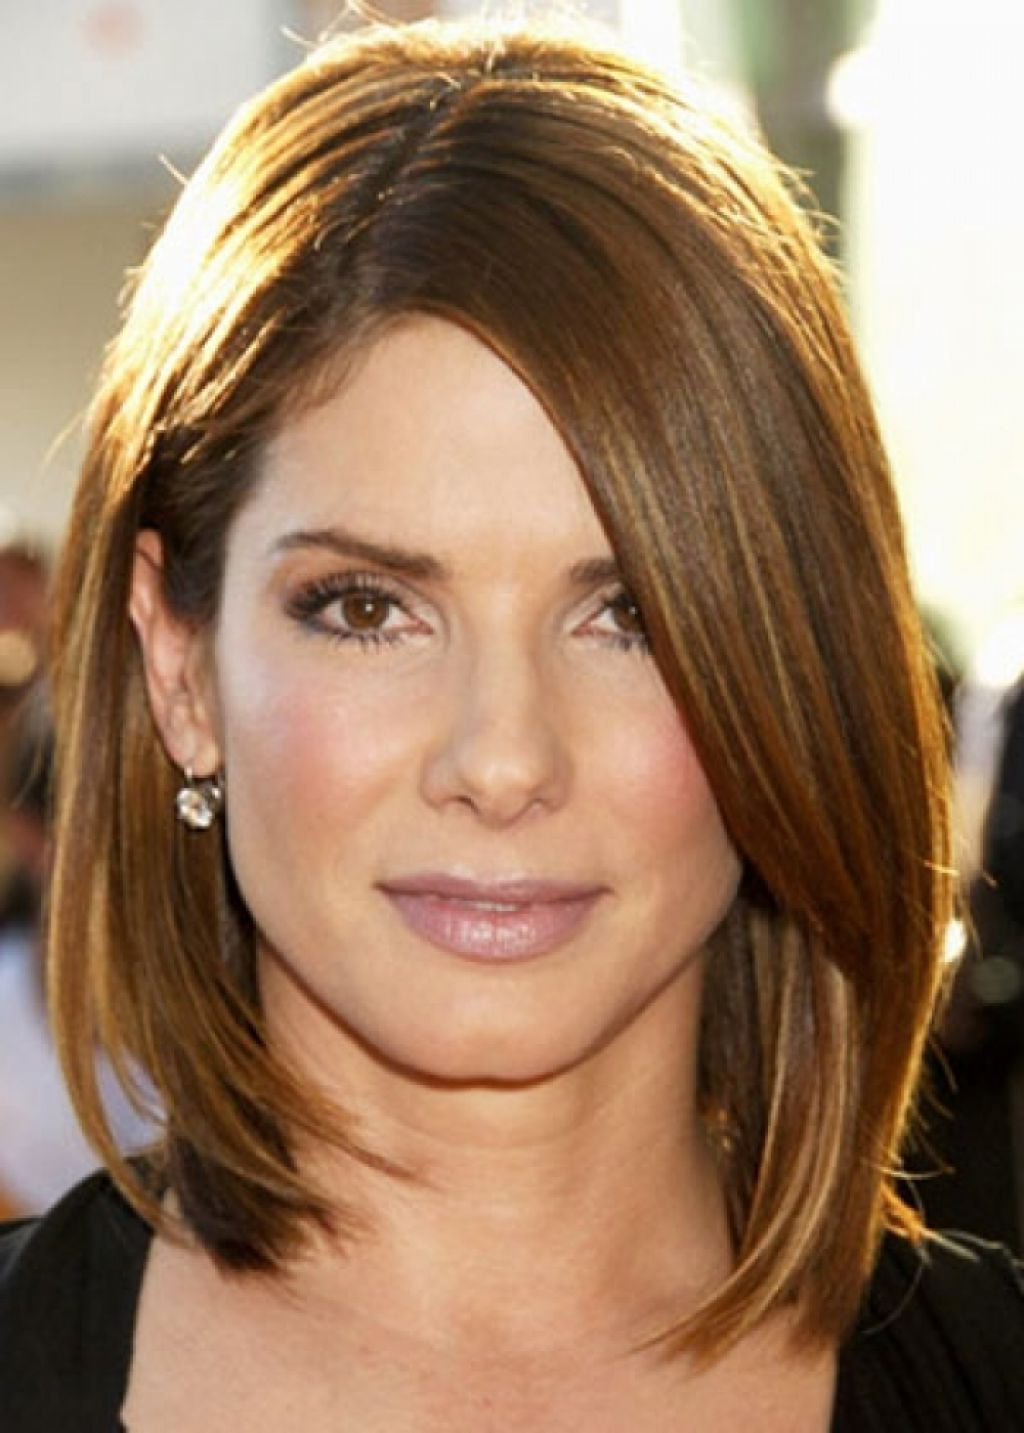 Image Result For Medium Short Hairstyles For Thin Face And Straight Intended For Medium To Short Haircuts For Thin Hair (View 6 of 25)